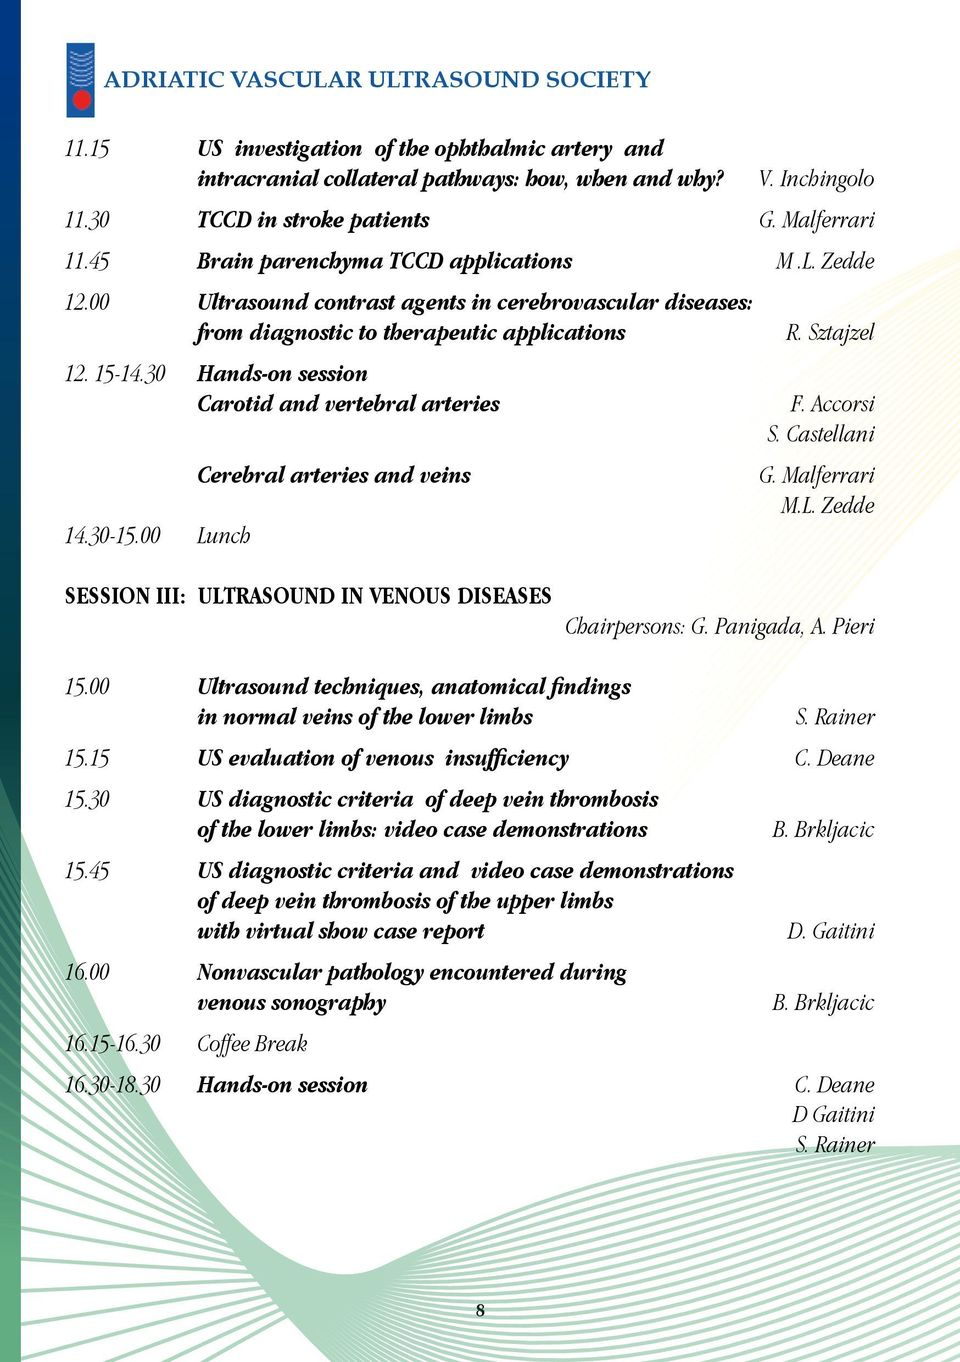 30 Hands-on session Carotid and vertebral arteries 14.30-15.00 Lunch Cerebral arteries and veins R. Sztajzel F. Accorsi S. Castellani G. Malferrari M.L. Zedde SESSION III: ULTRASOUND IN VENOUS DISEASES Chairpersons: G.